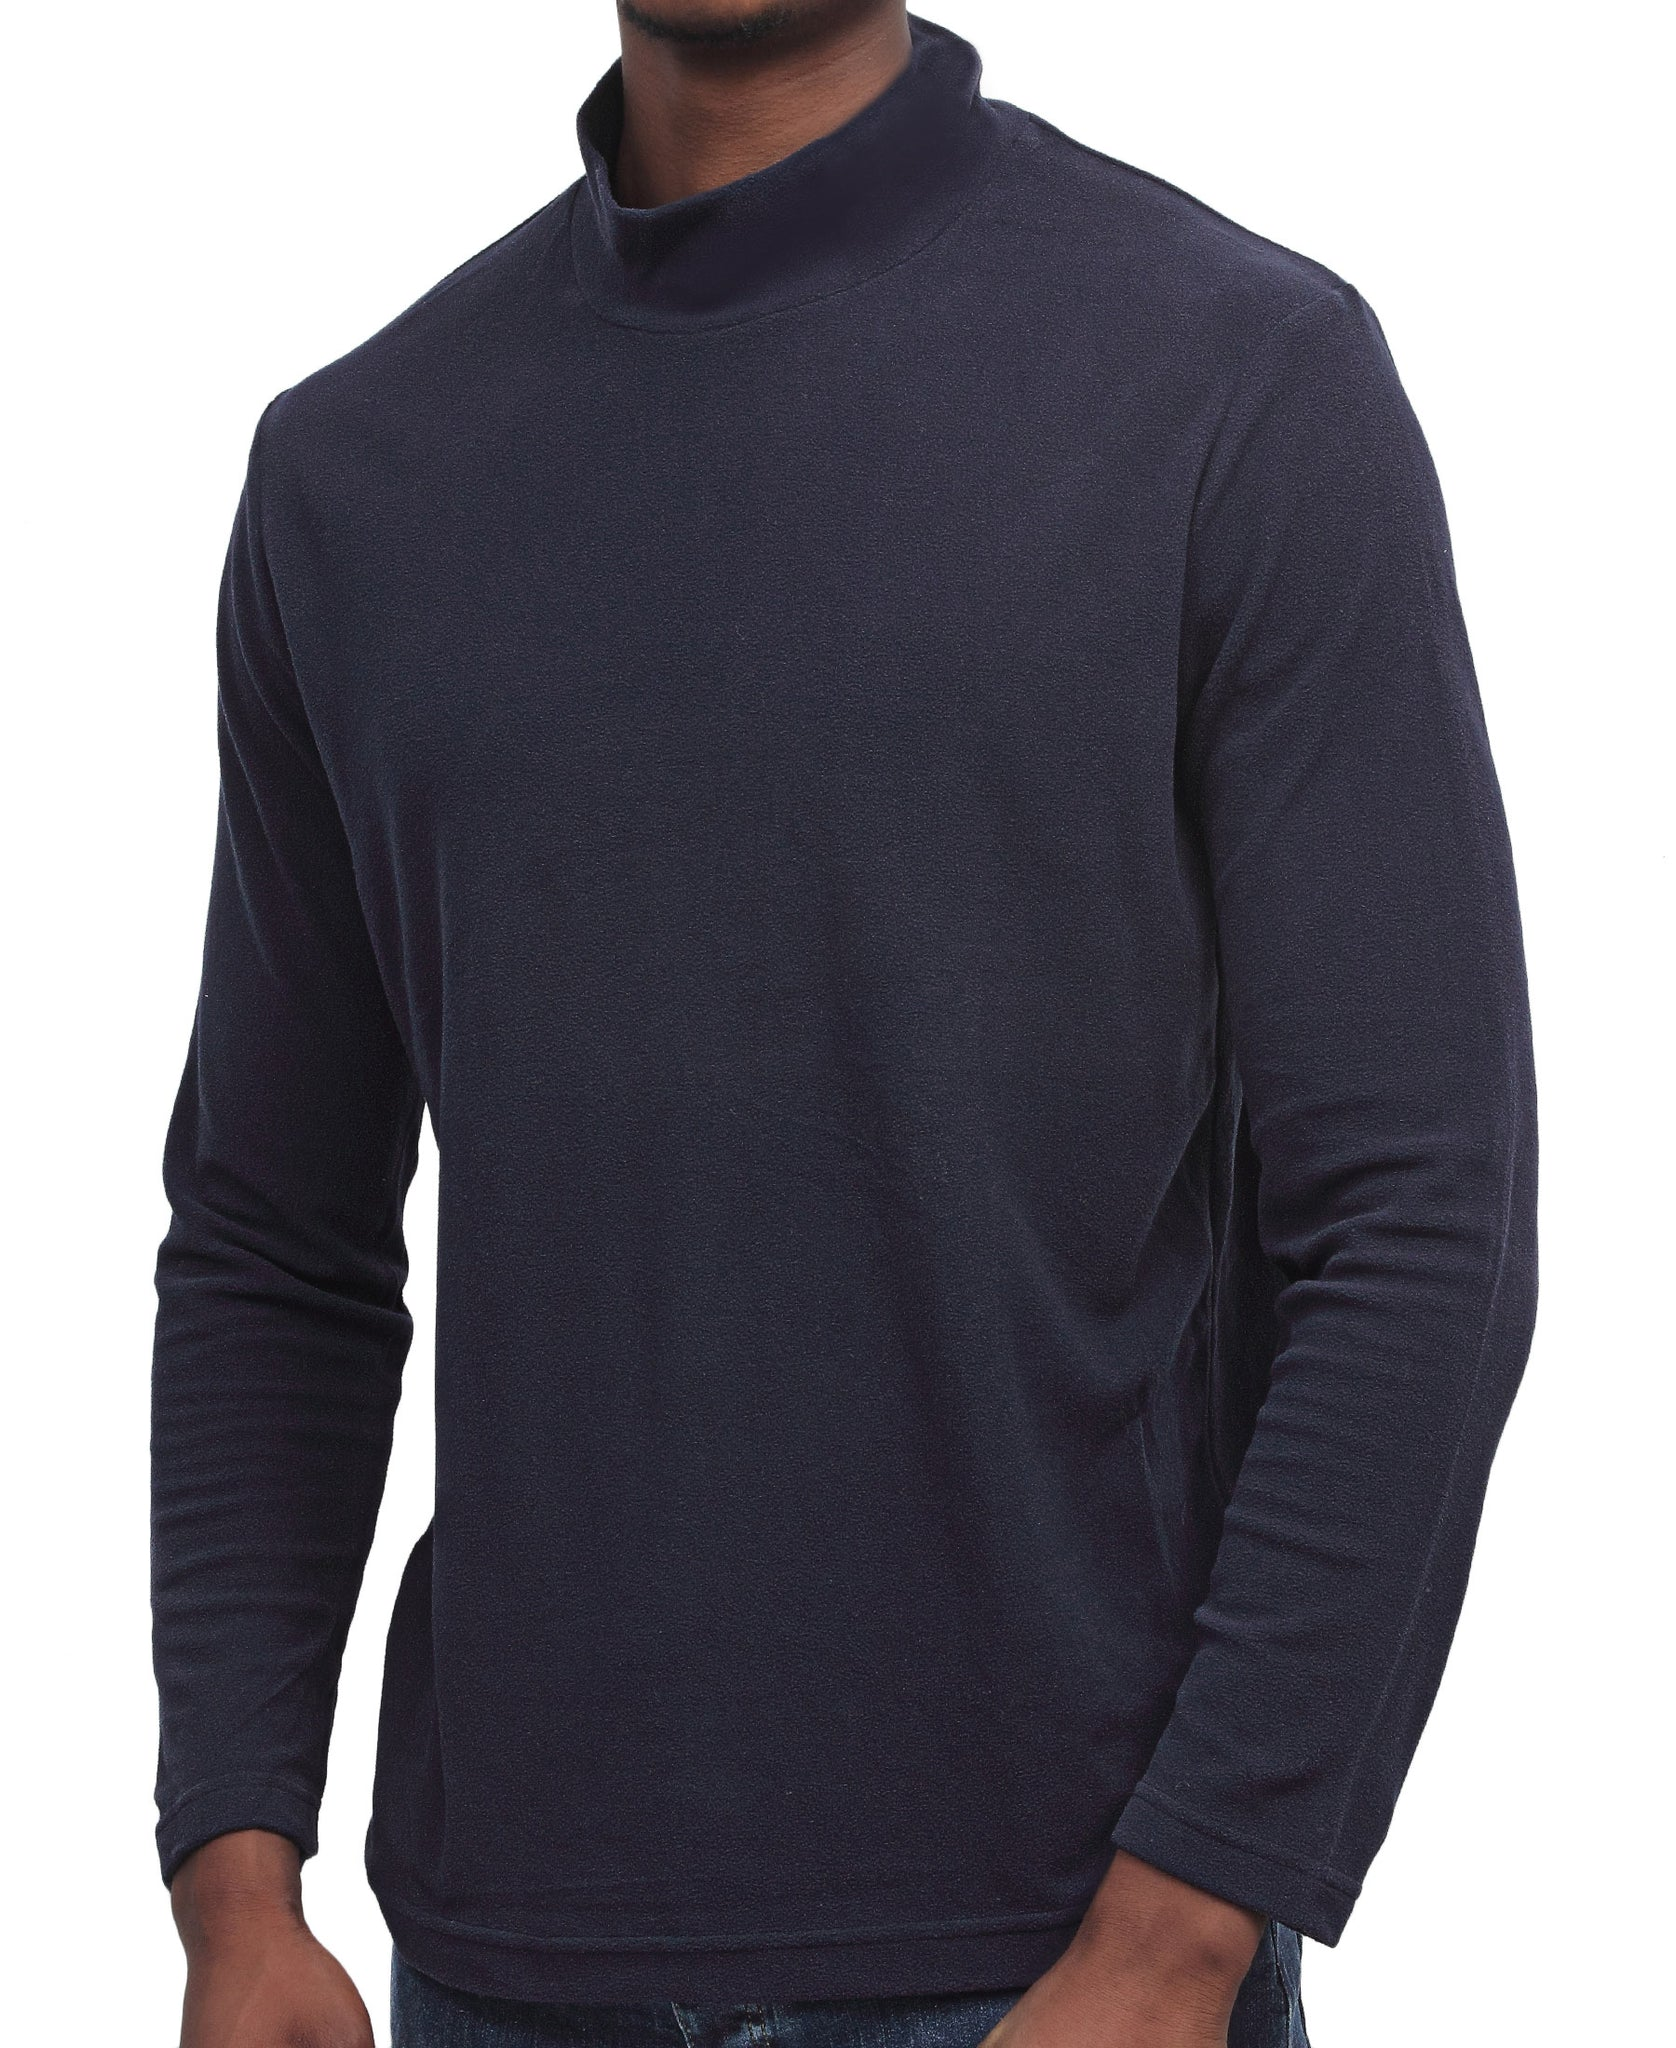 Long Sleeve Turtleneck - Navy